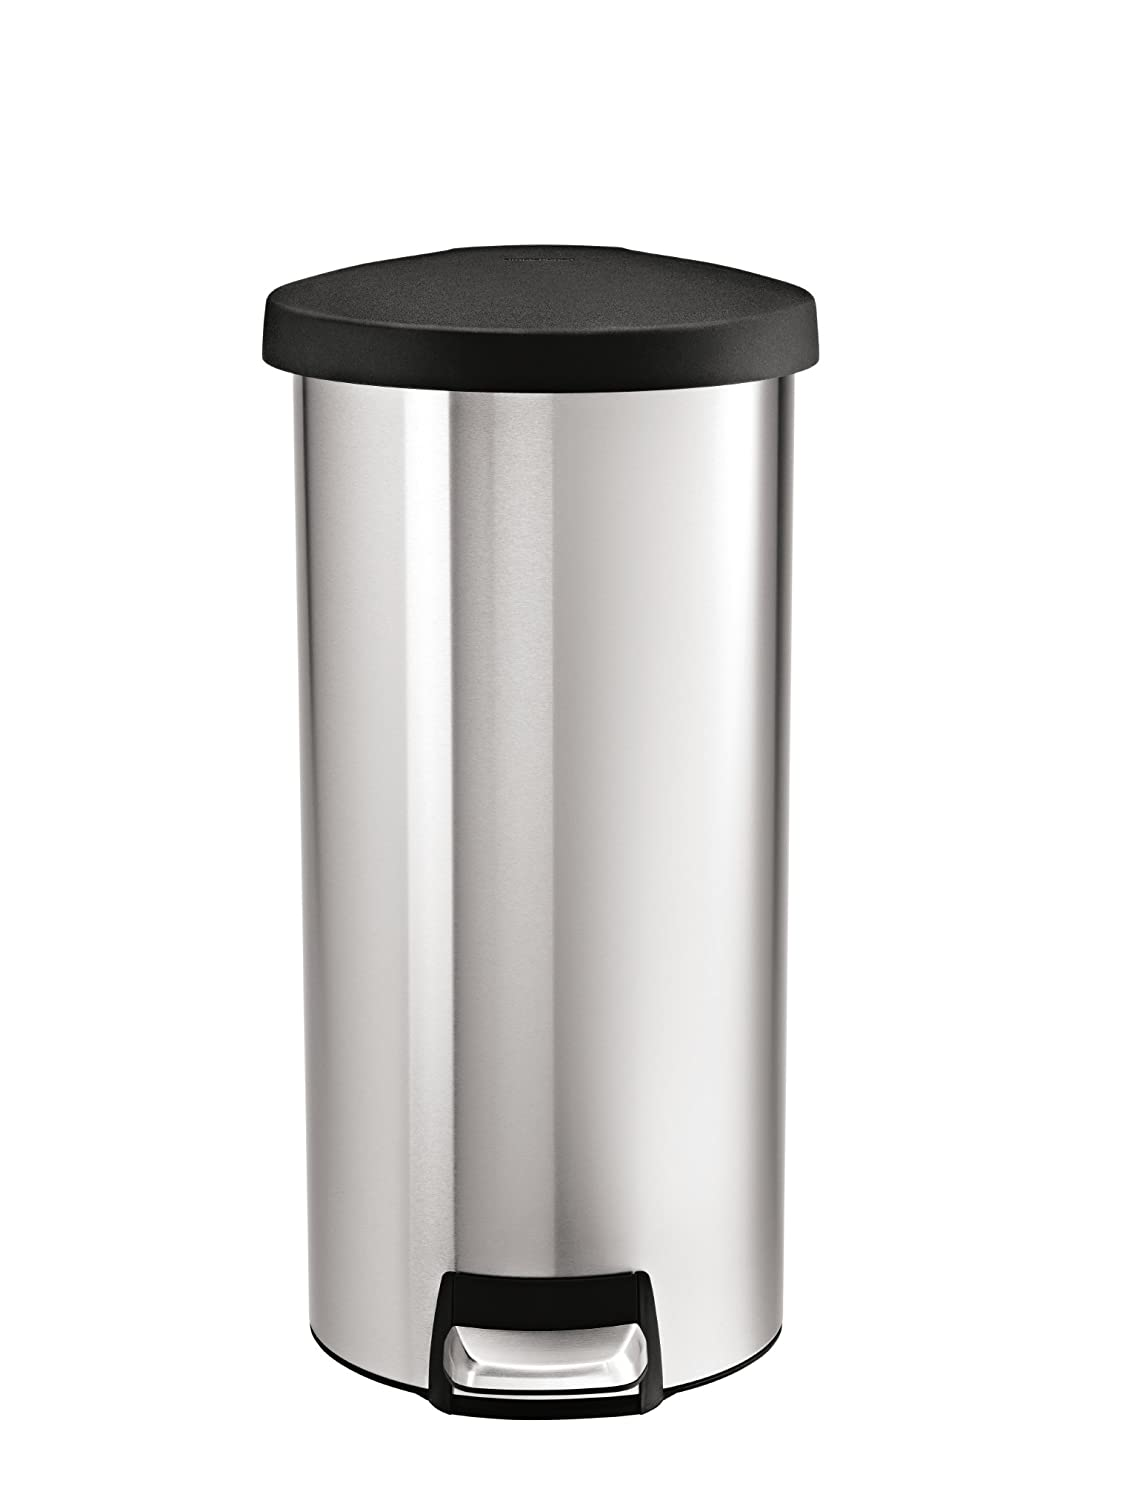 amazoncom simplehuman round step trash can stainless steel plastic lid 30 l 8 gal home kitchen - Stainless Steel Kitchen Trash Can